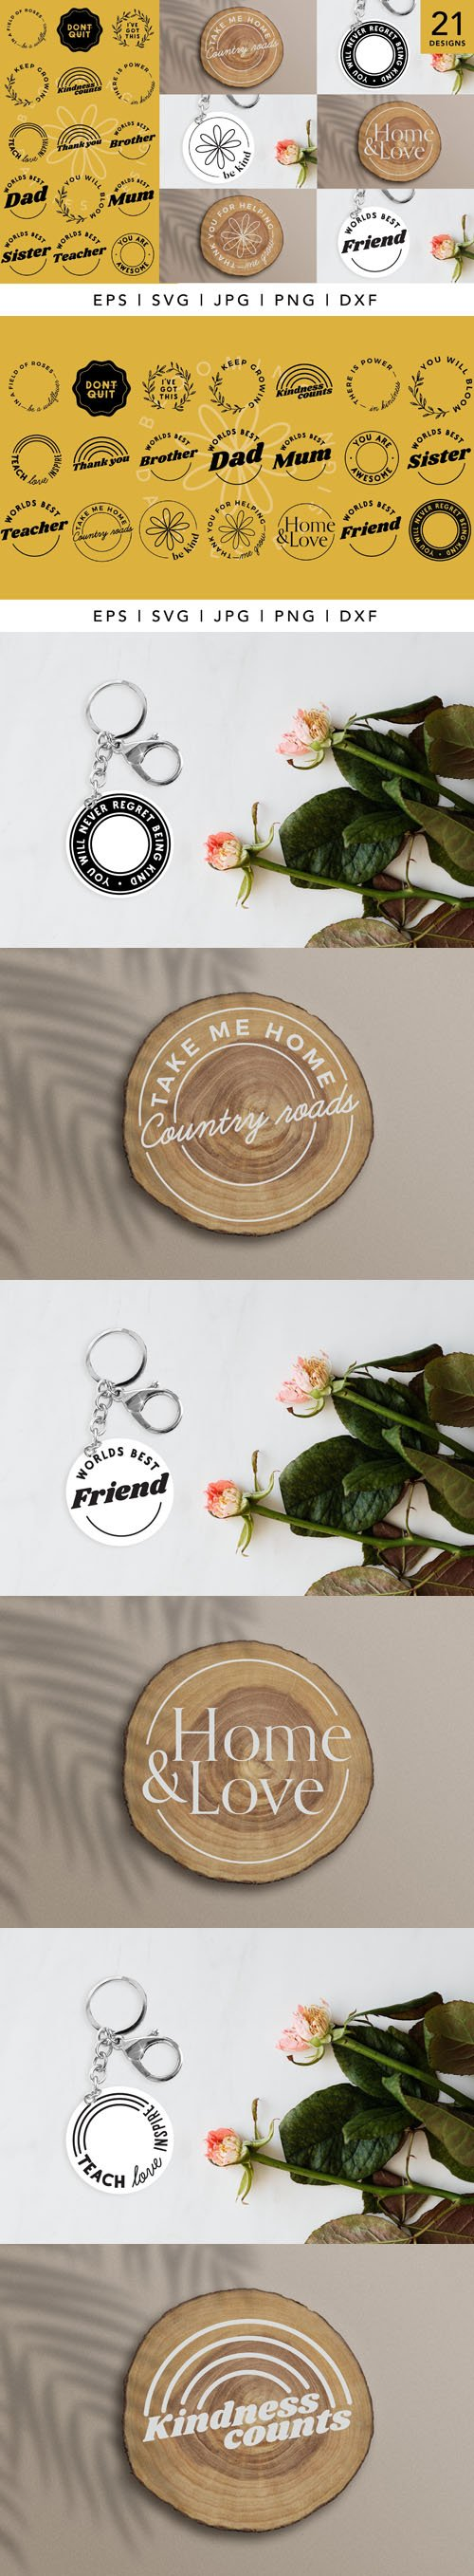 21 Circle Keychain Vector Templates Collection